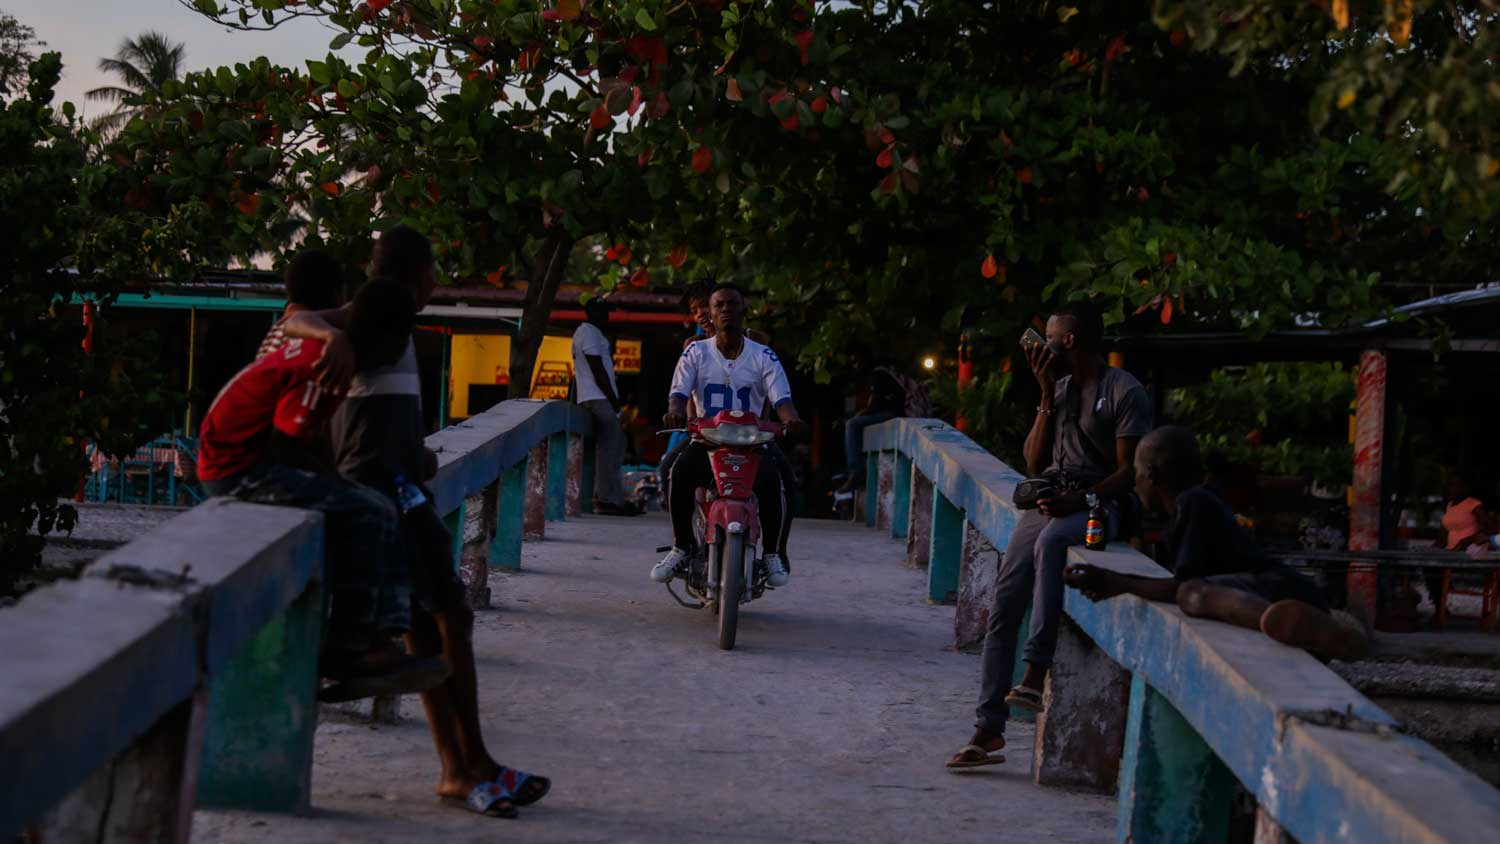 People relaxing at dusk on the boardwalk by Gelée Beach, Haiti